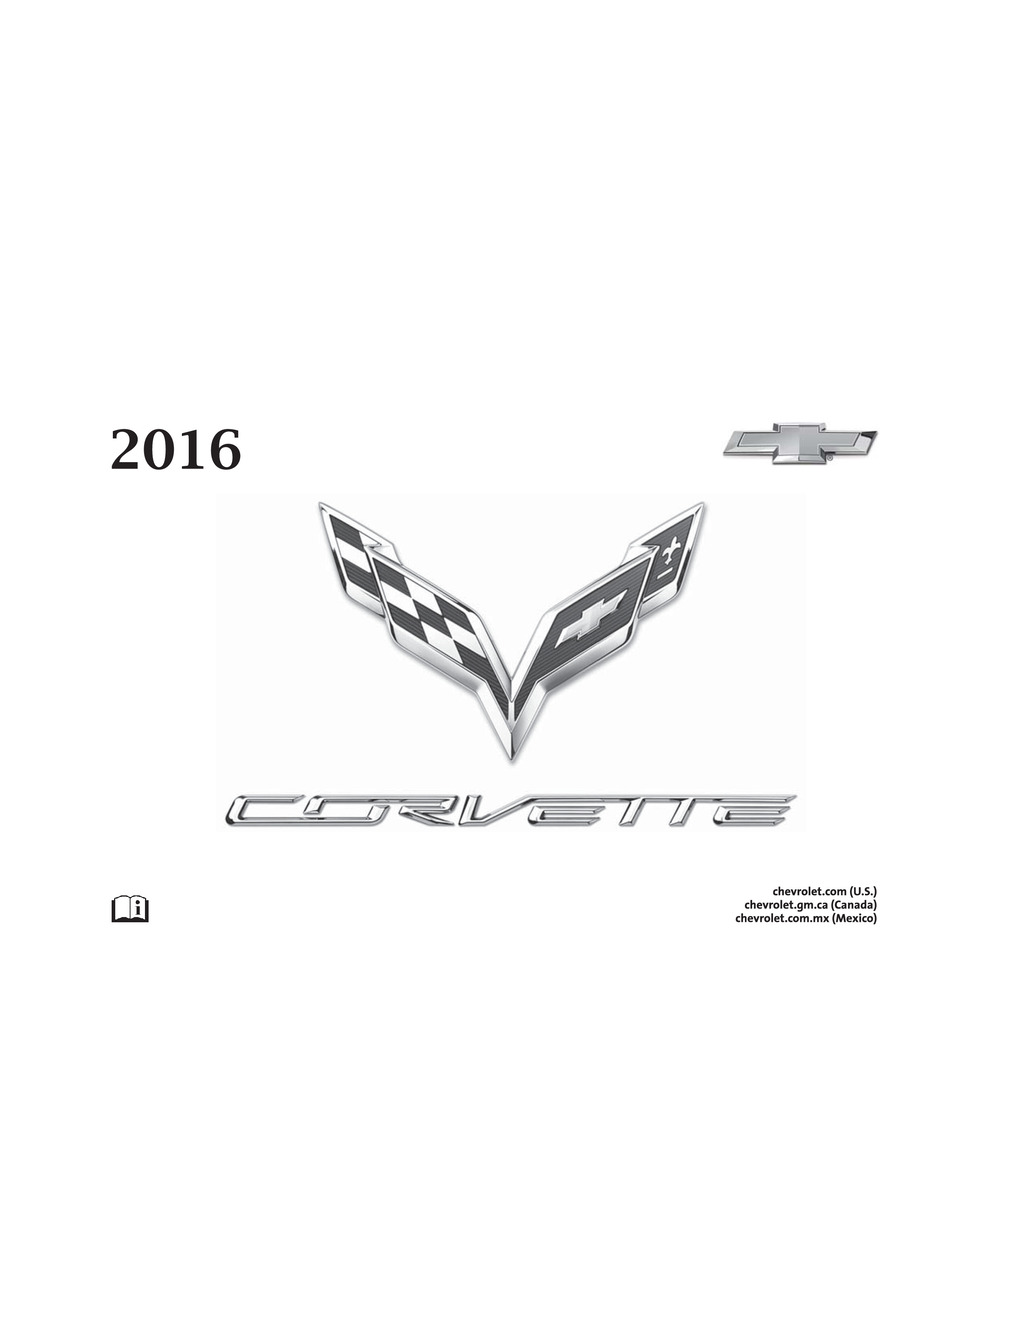 2016 Chevrolet Corvette owners manual